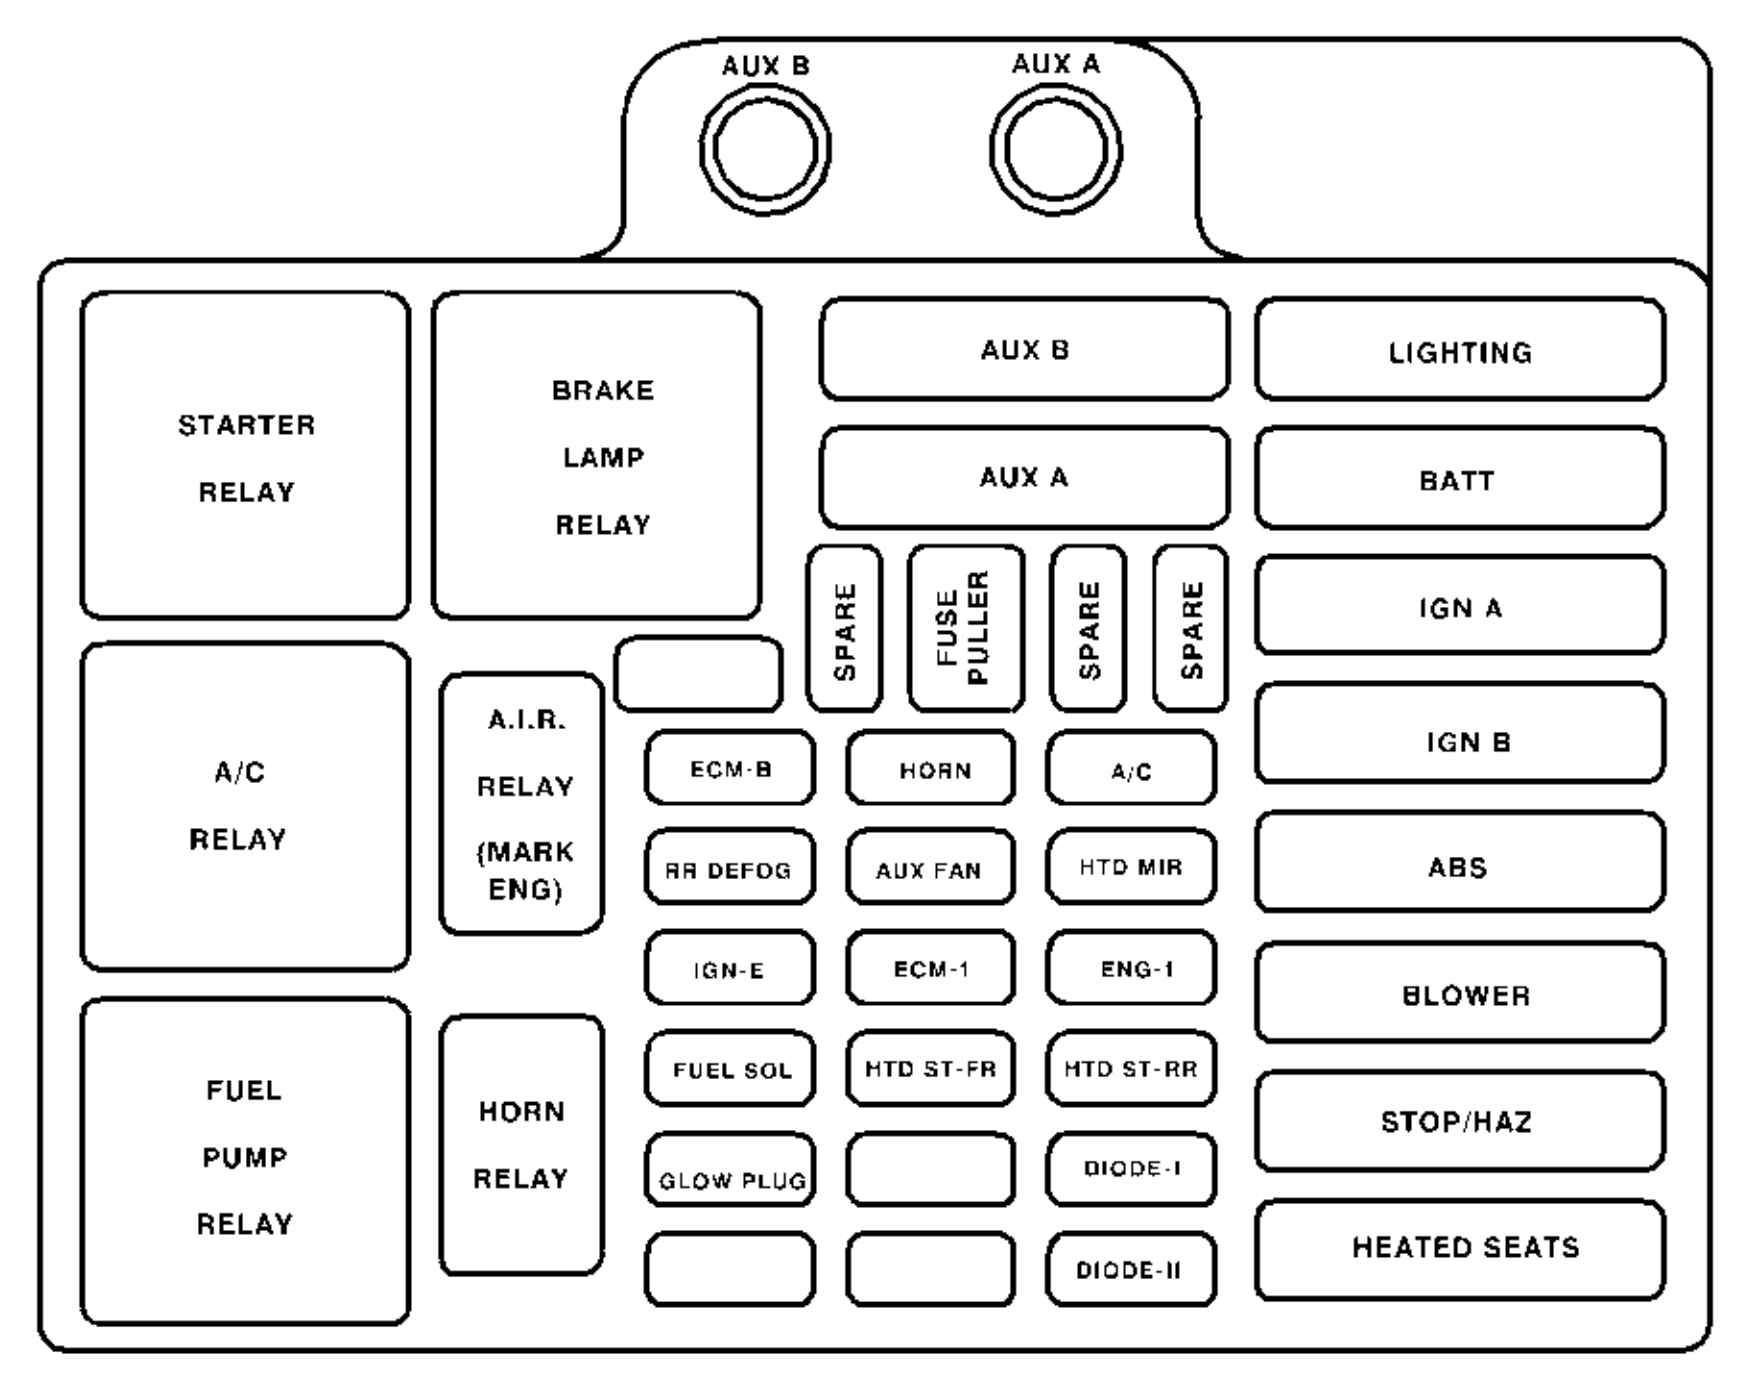 hight resolution of 2005 suburban wiring diagram wiring diagram database 2005 suburban fuse panel diagram